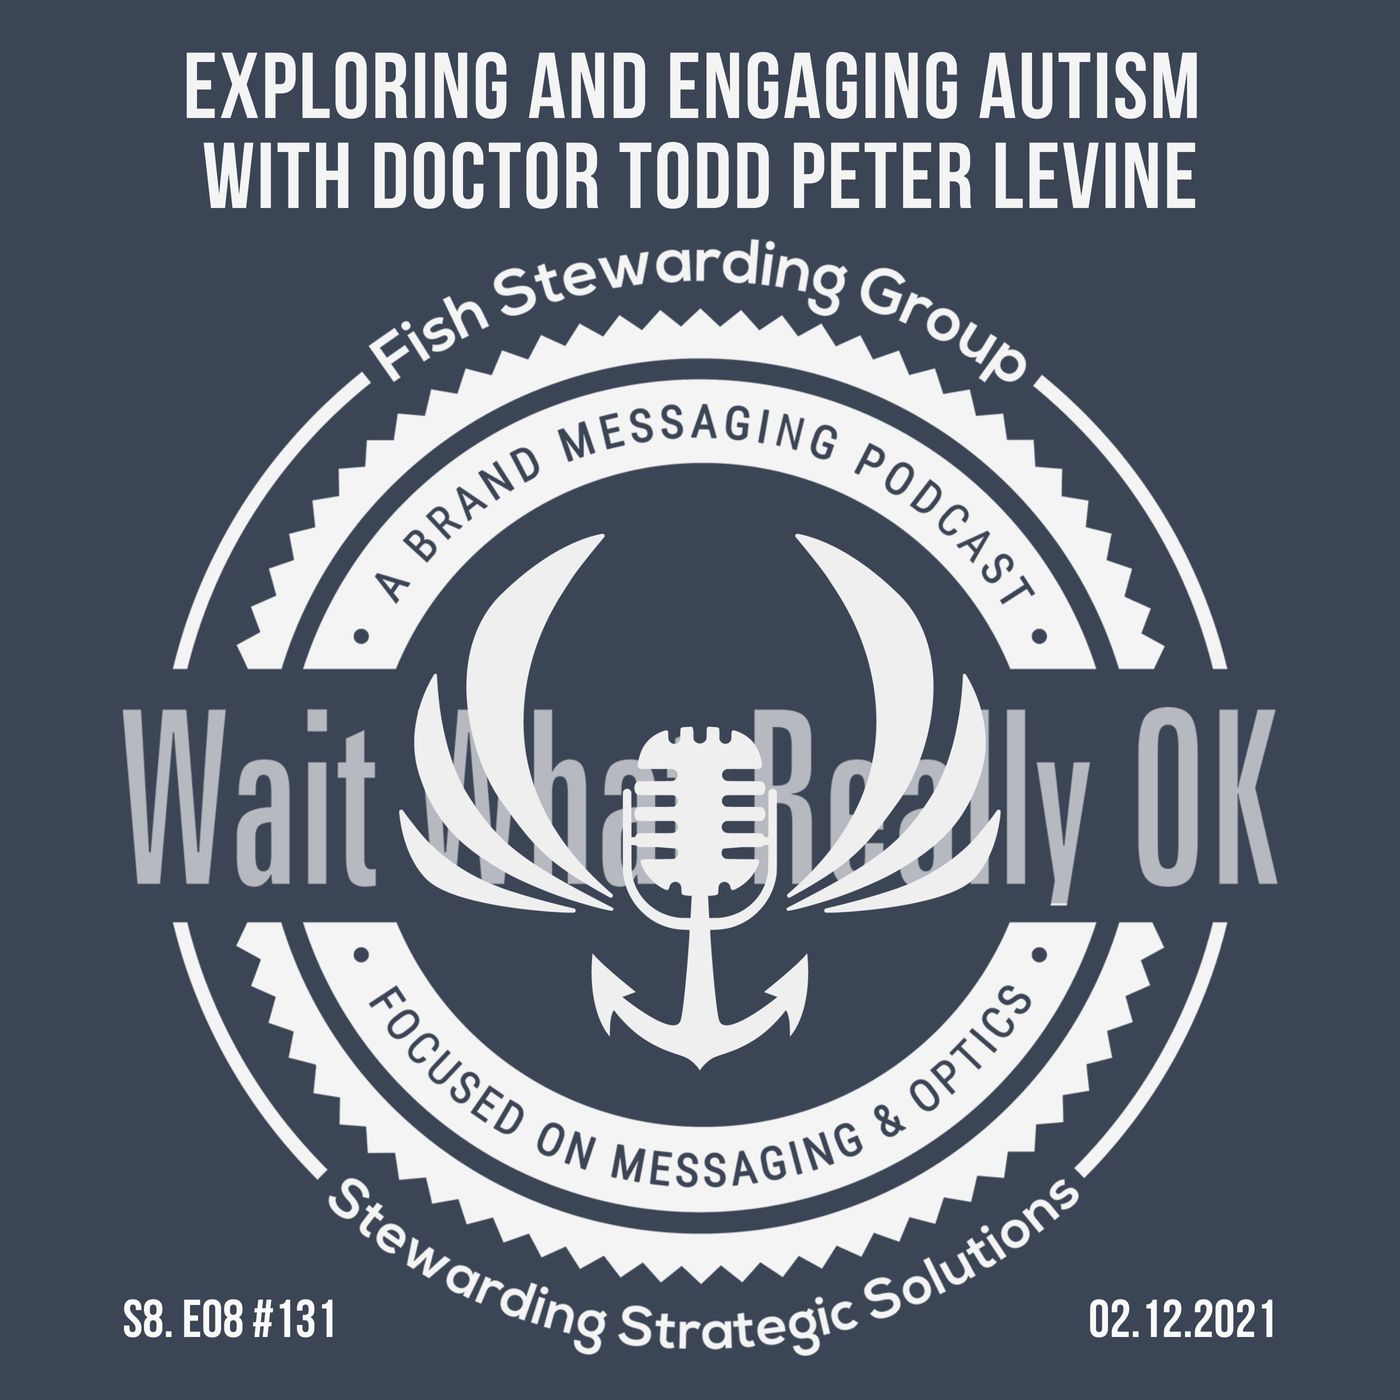 Exploring and engaging autism with Doctor Todd Peter Levine.